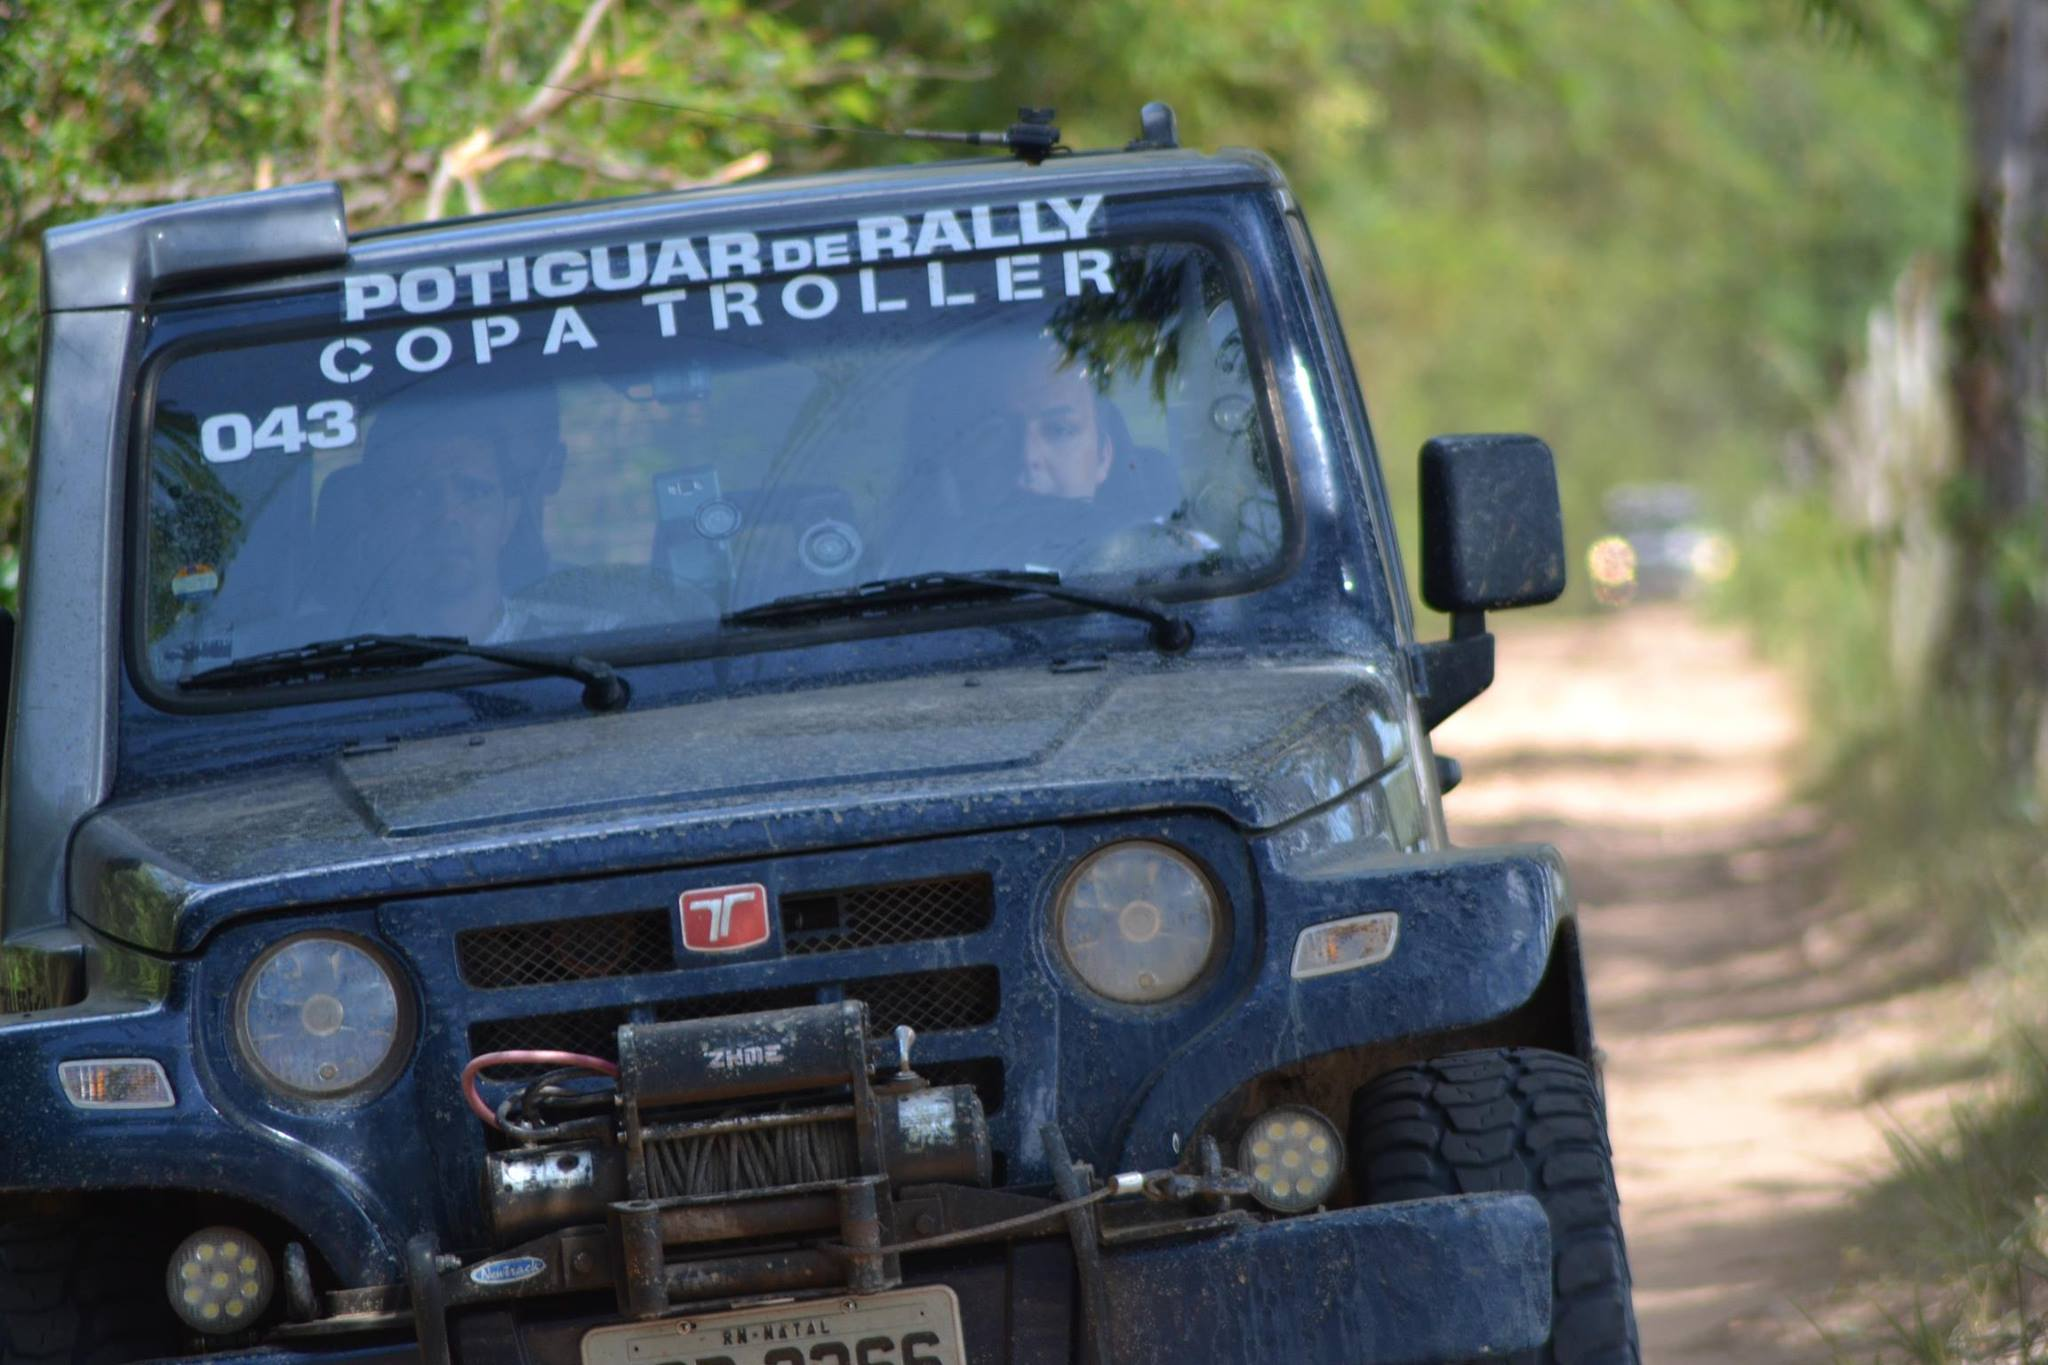 Campeonato Potiguar de Rally